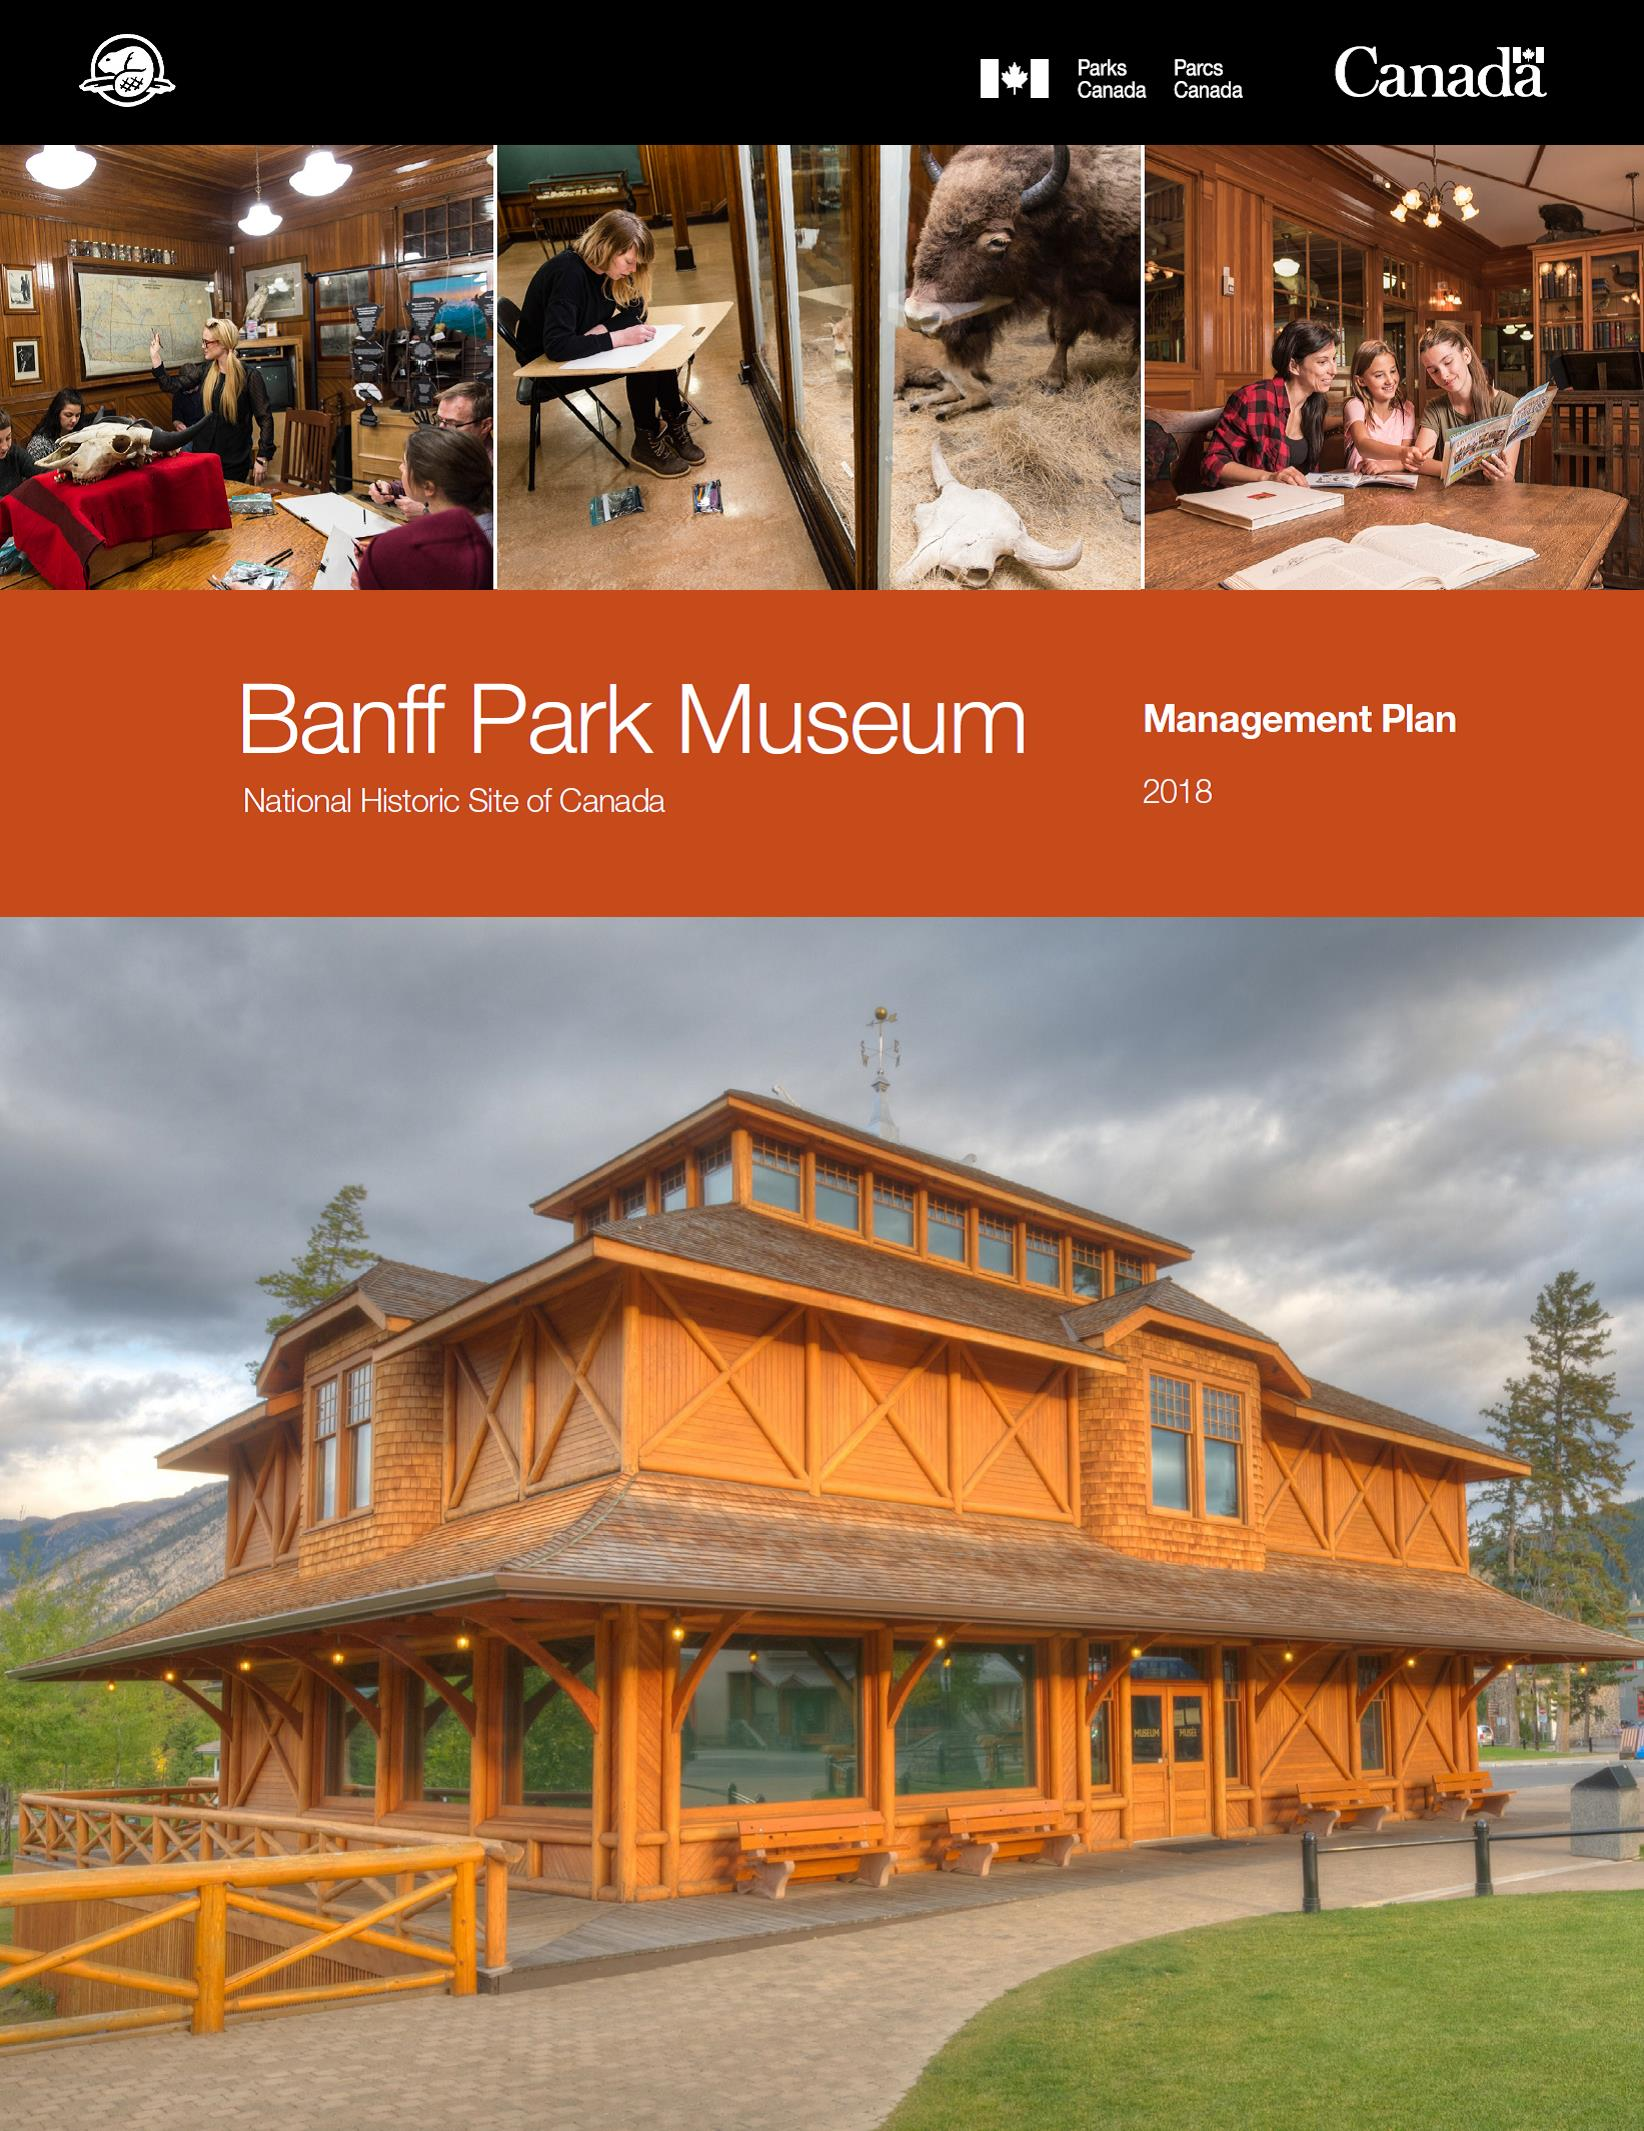 managing historic sites and buildings reconciling presentation and preservation issues in heritage management